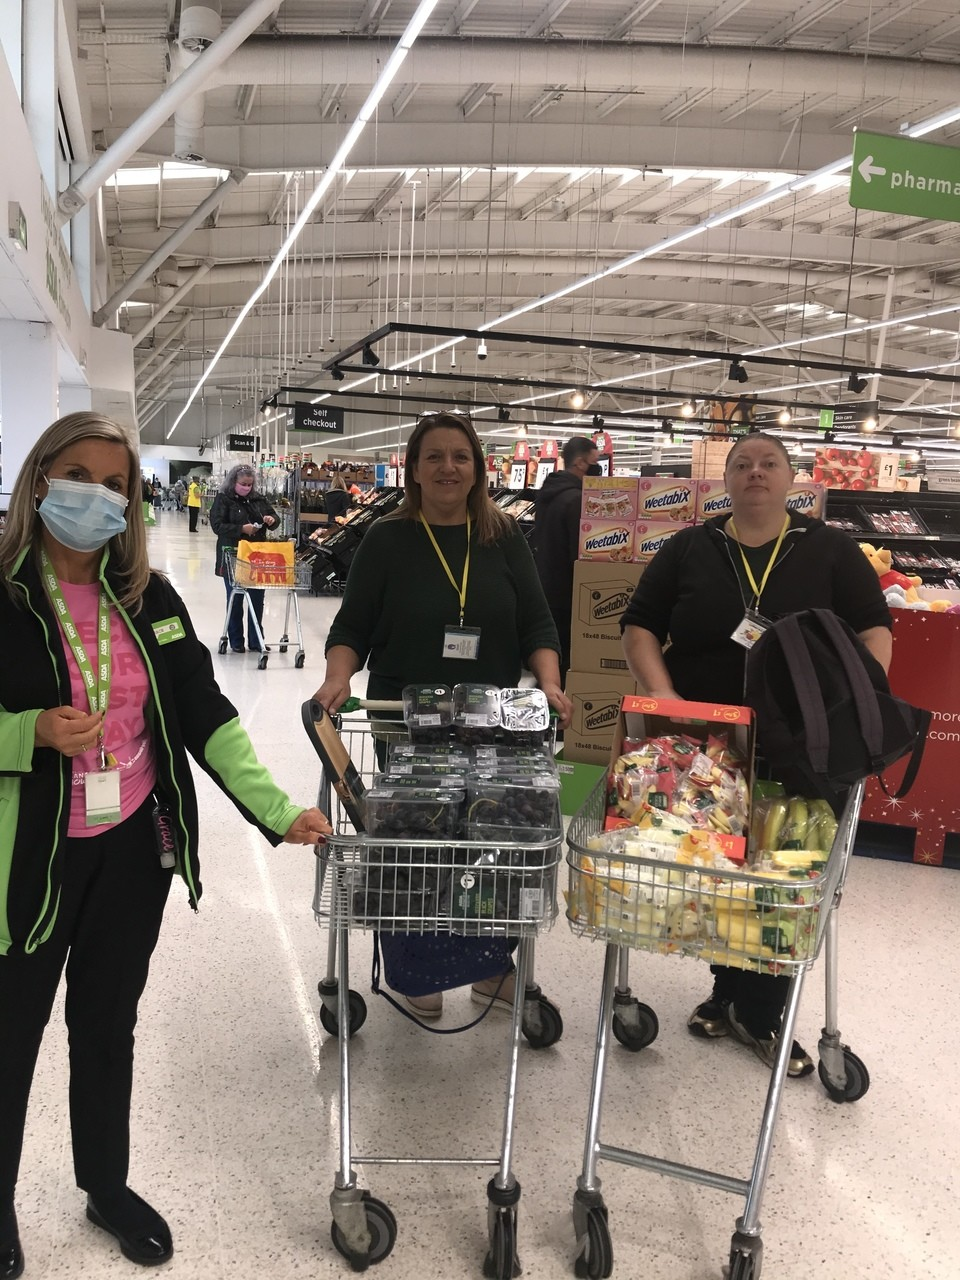 Fruit packs for the elderly and vulnerable | Asda Robroyston